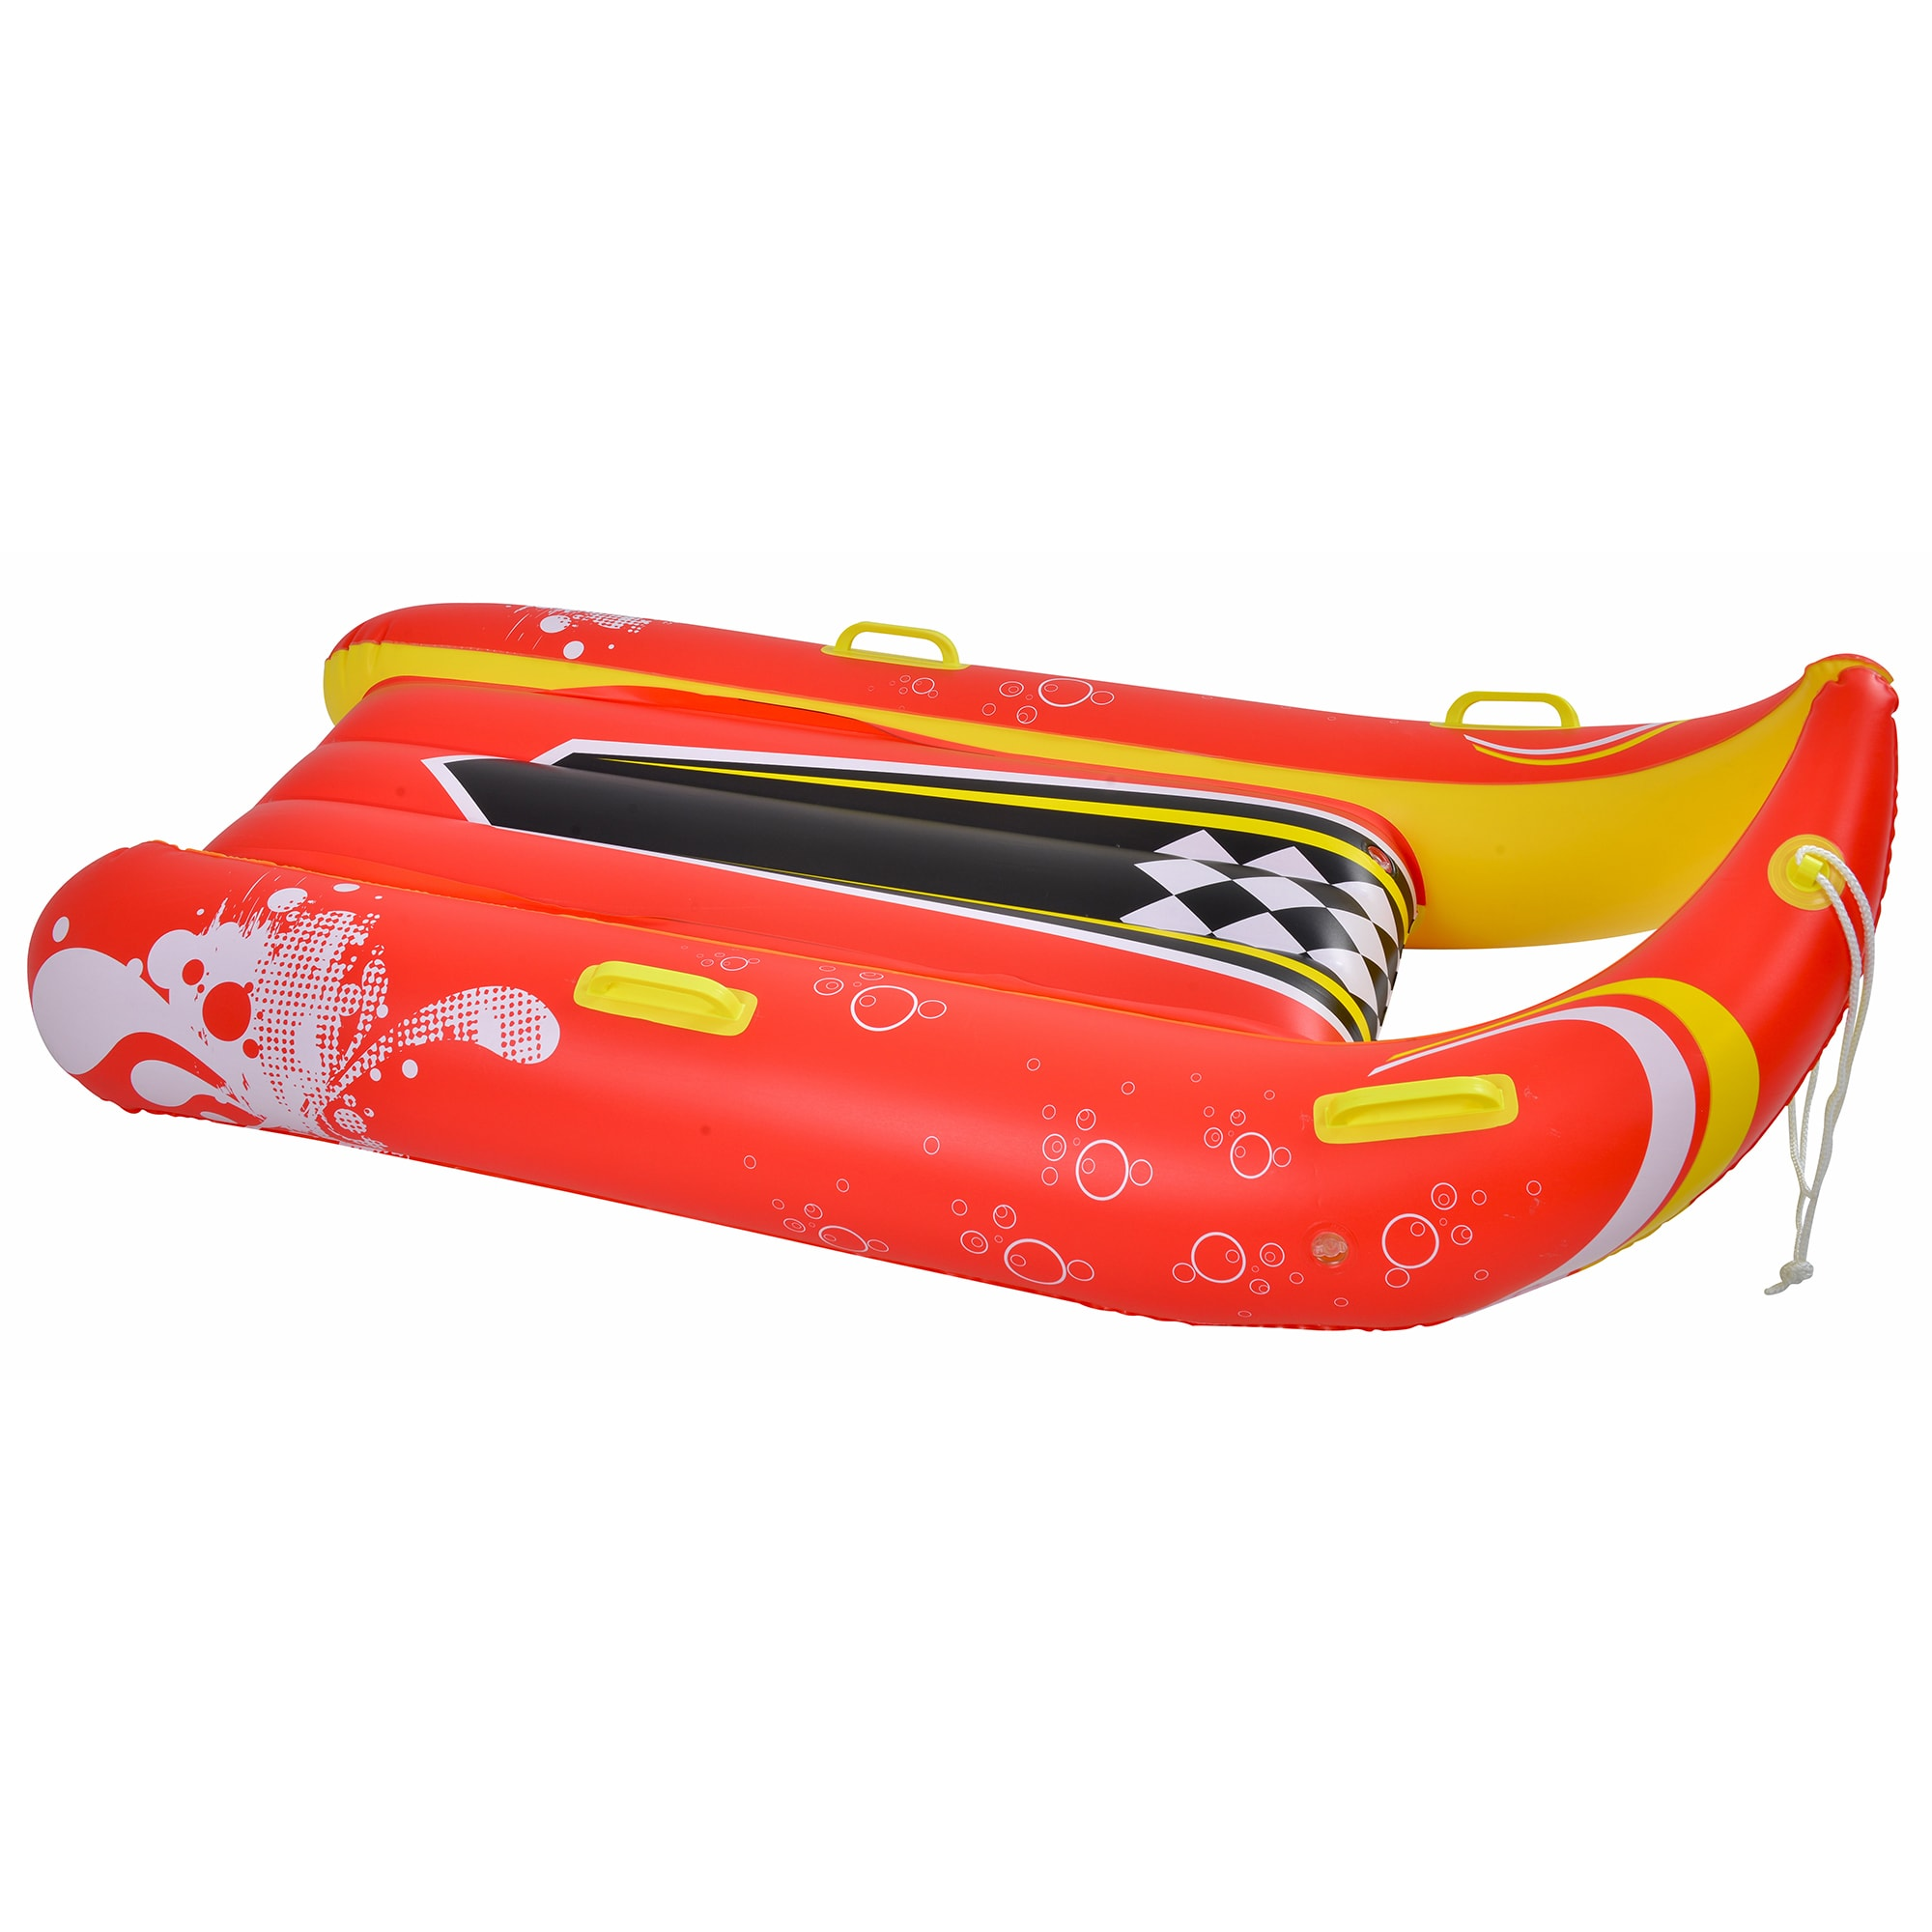 Blue Wave Sports Power Glider 57-inch 2-person Inflatable Snow Sled by Overstock